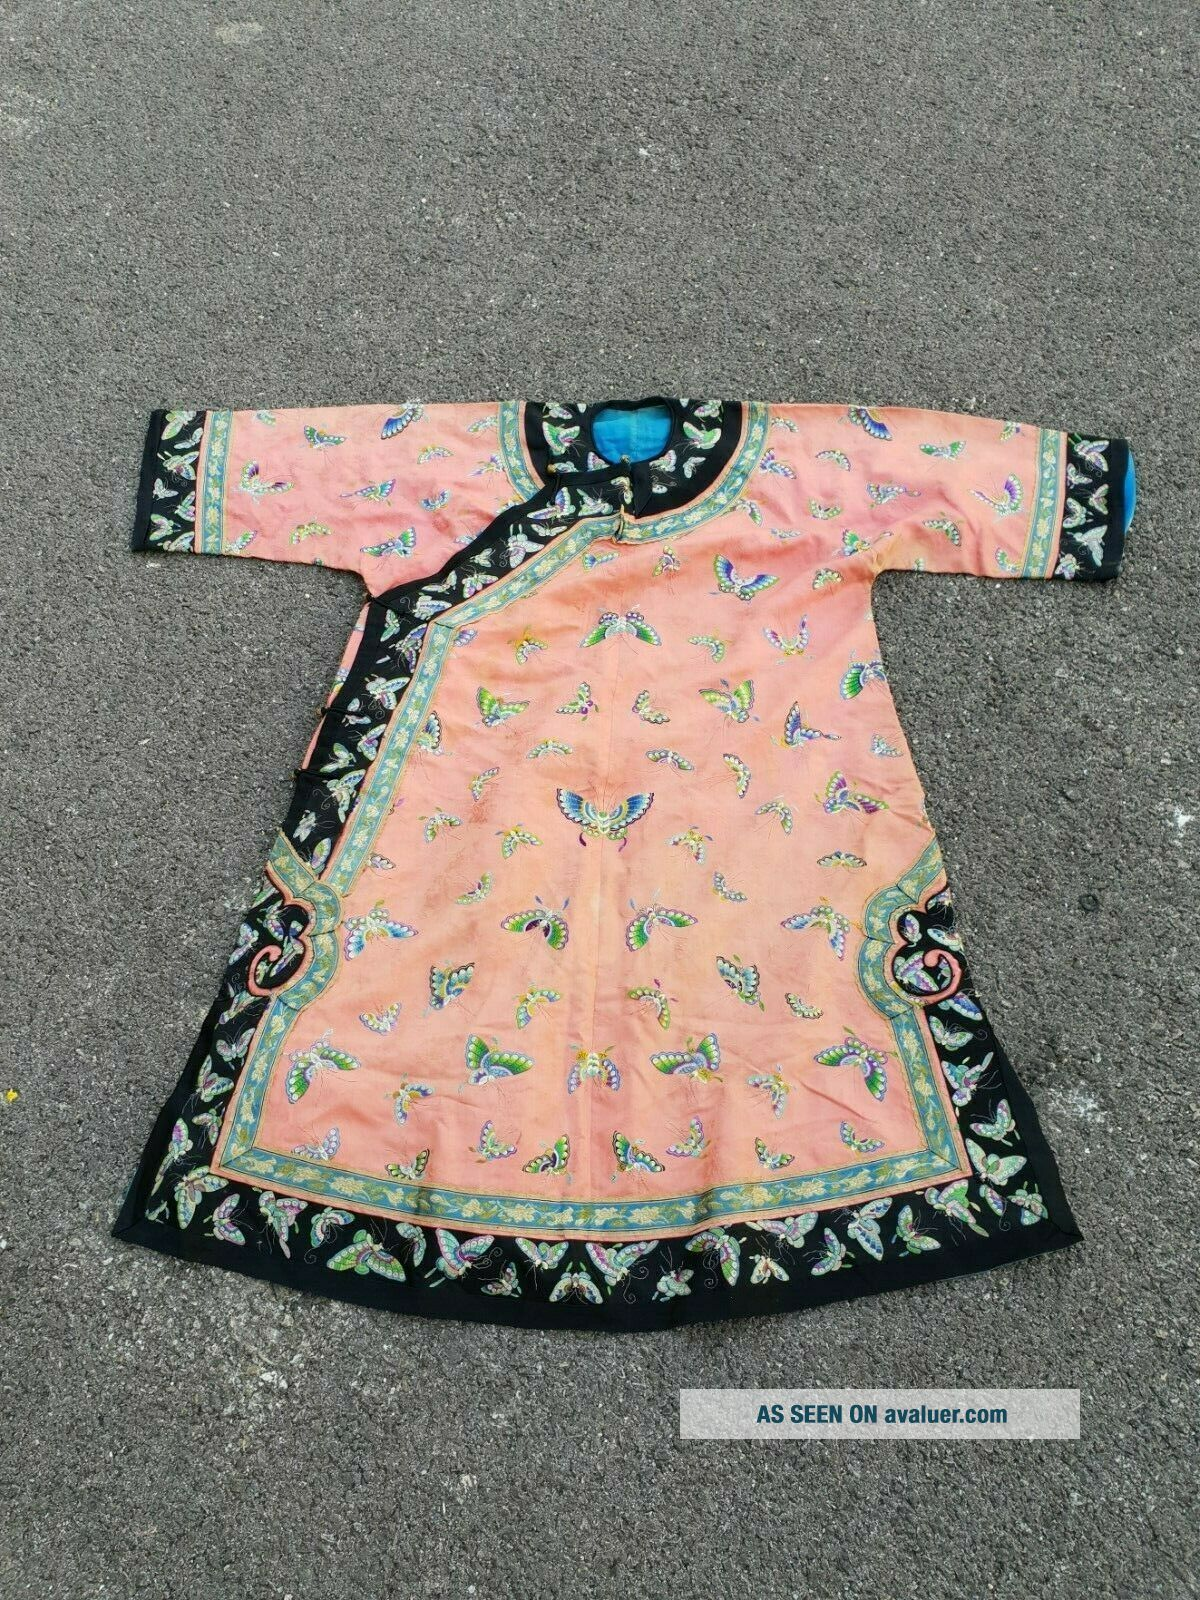 Antique 19 th Chinese silk embroidery robe